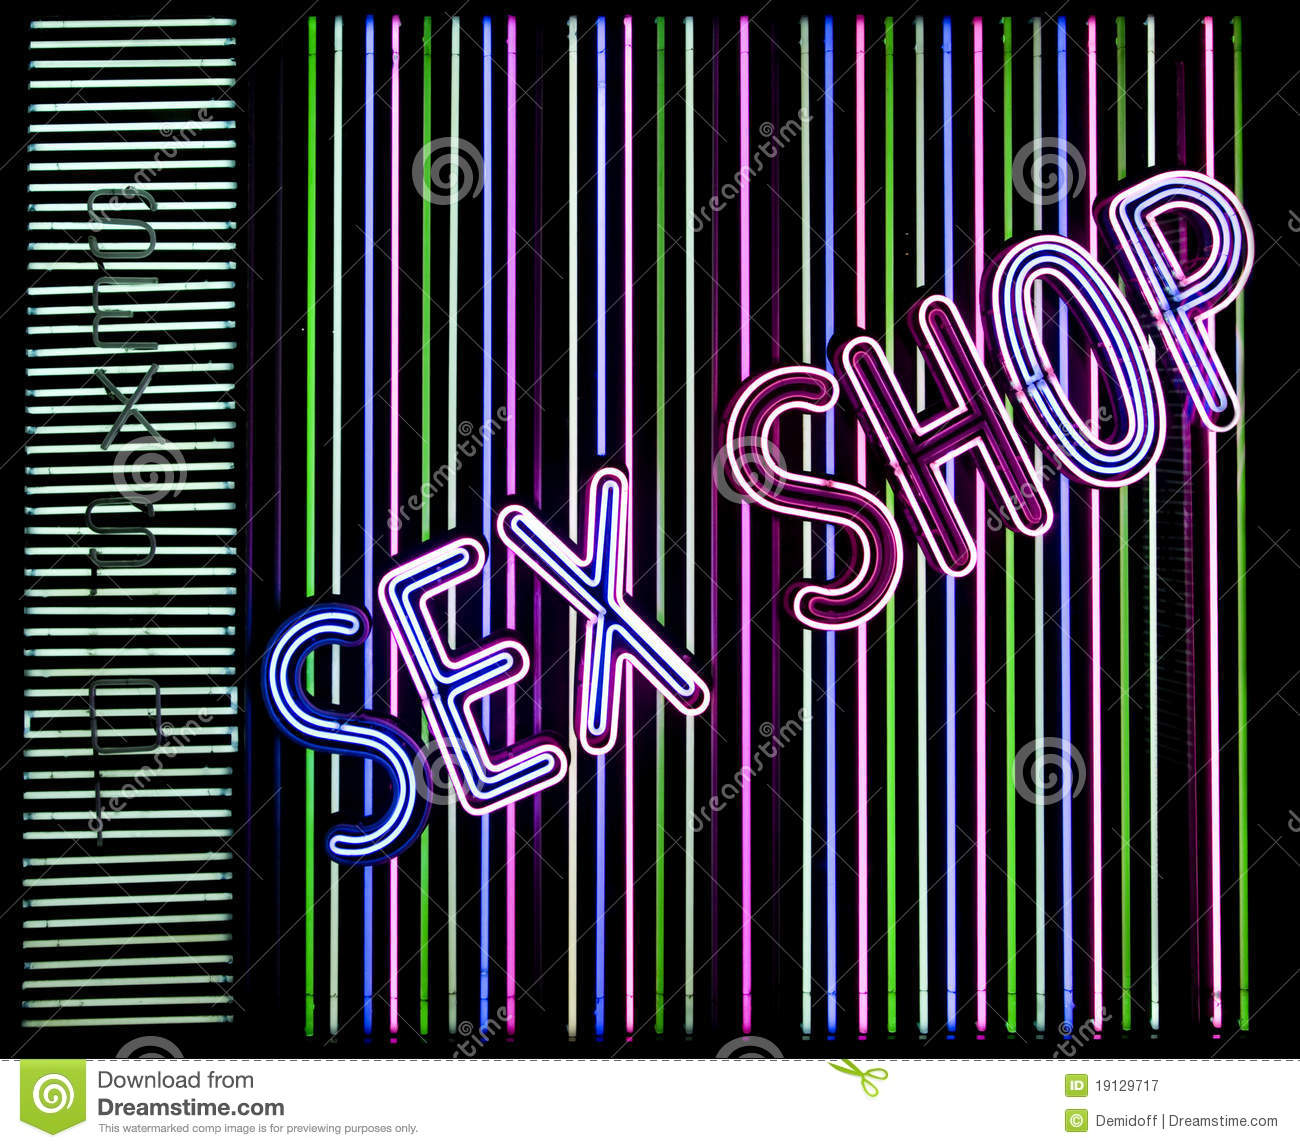 eskorteservice no free sex show